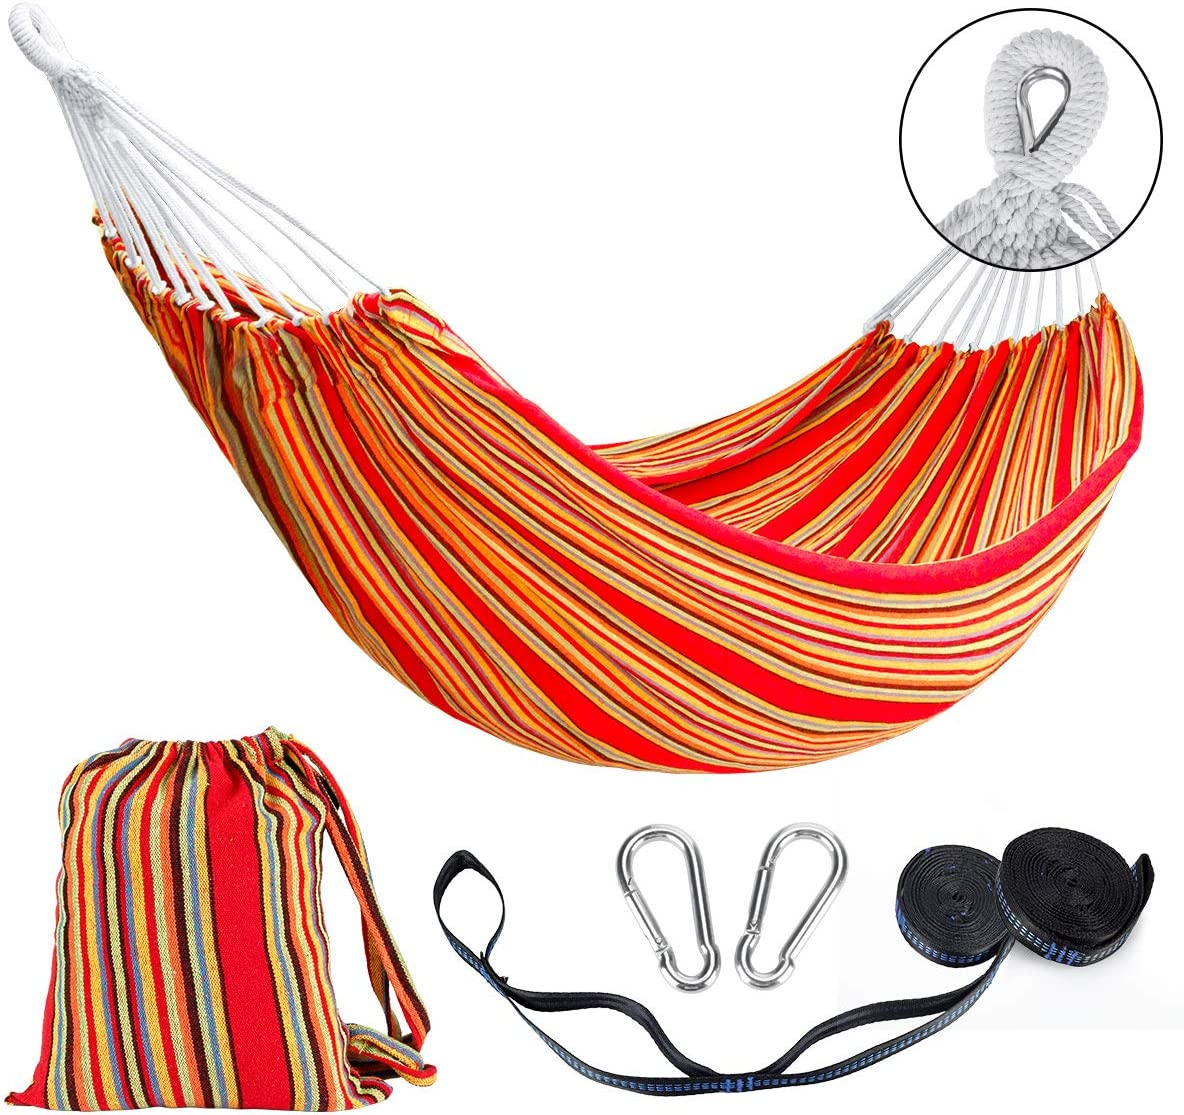 Lalafancy Double Hammock 2 Person Cotton Travel Hammock with Carrying Bag, 450lbs Ultralight Camping Hammock for Patio Porch Garden Backyard Lounging Outdoor or Indoor Rainbow Stripe Hammock